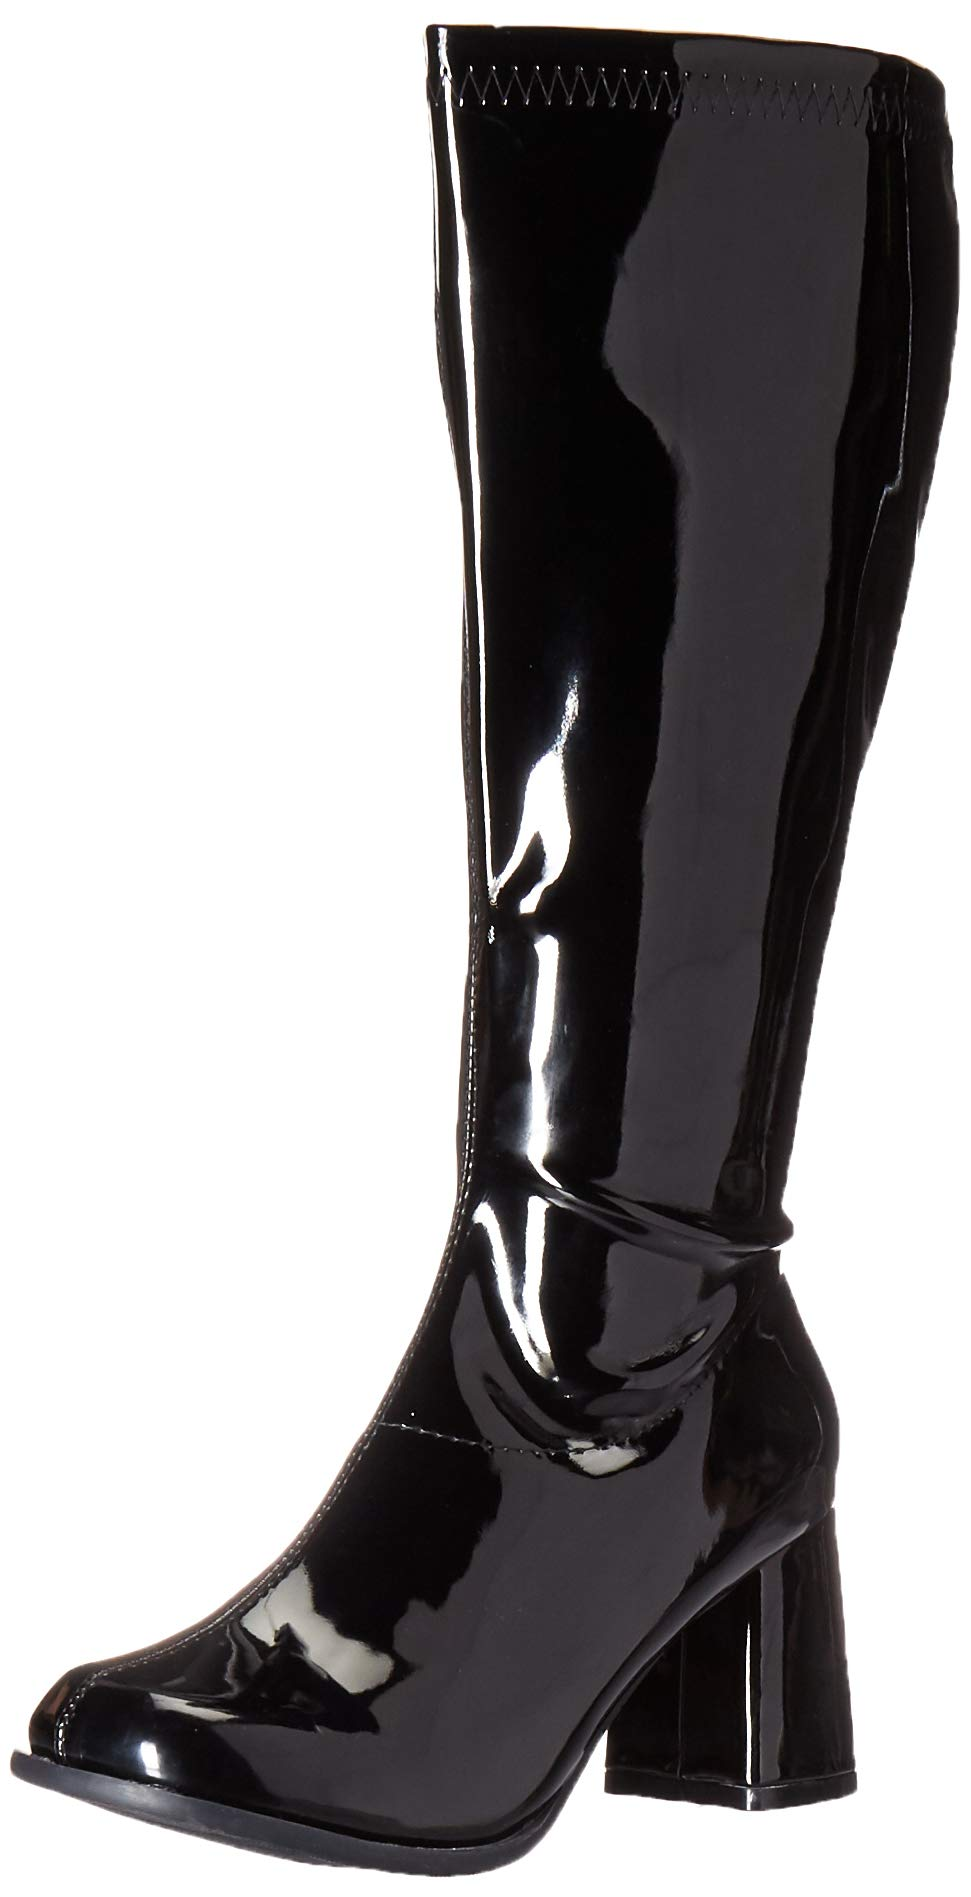 Ellie Shoes Women's Gogo-w Knee High Boot